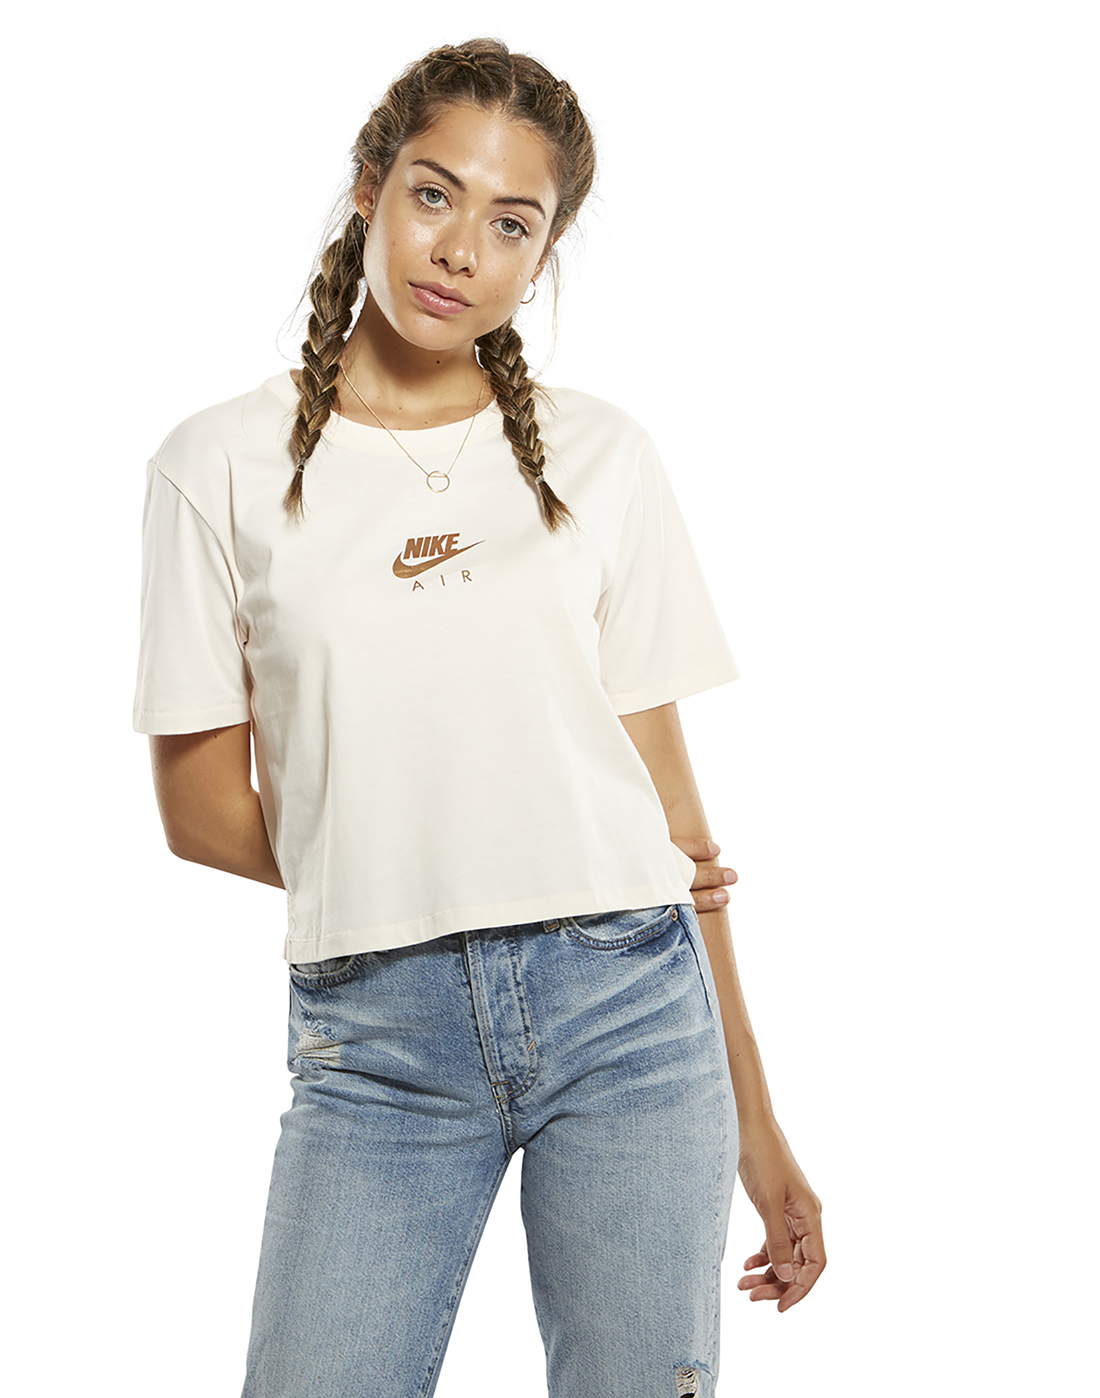 a45c8e21b Women's Nike Air Crop T-Shirt | Cream | Life Style Sports